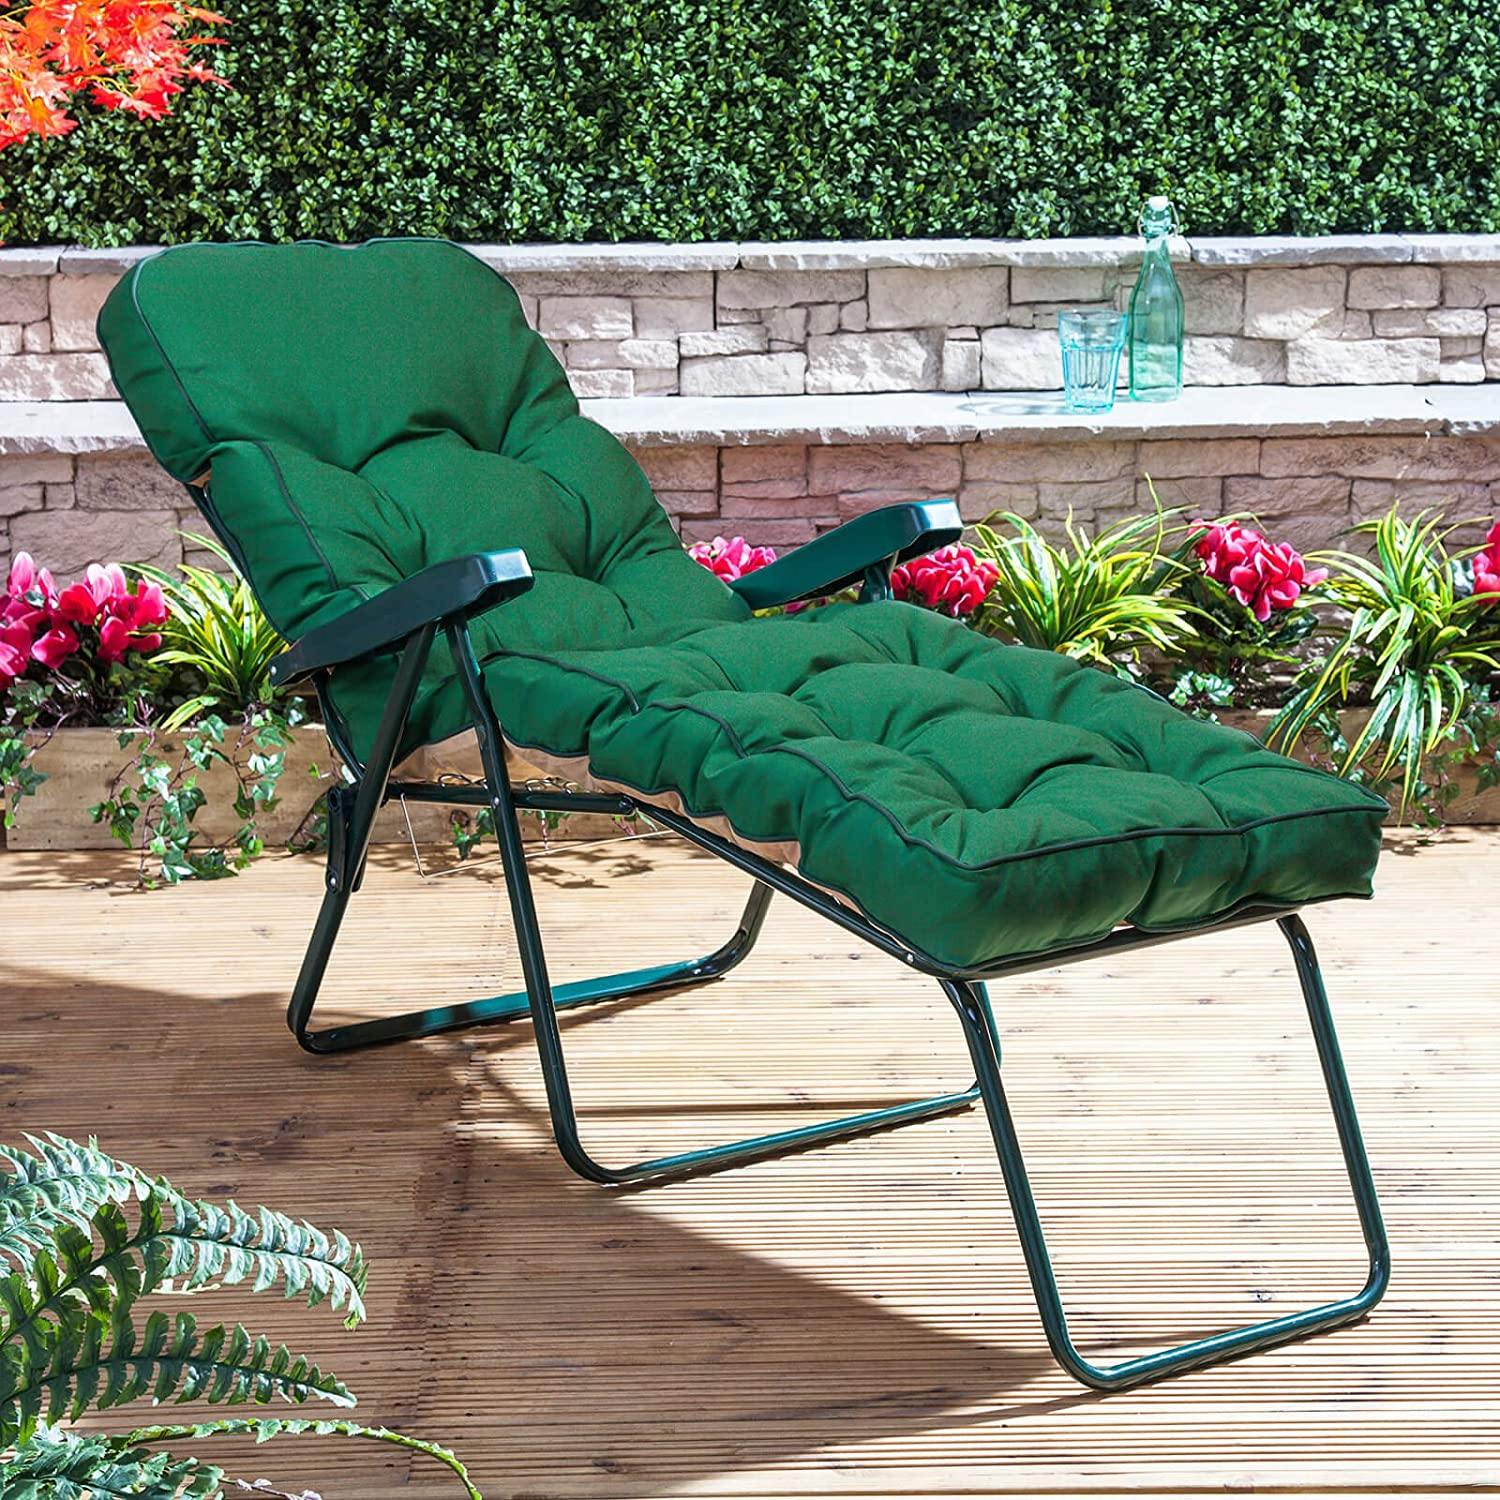 Alfresia Classic Sun Lounger Cushion in Green Sunloungers